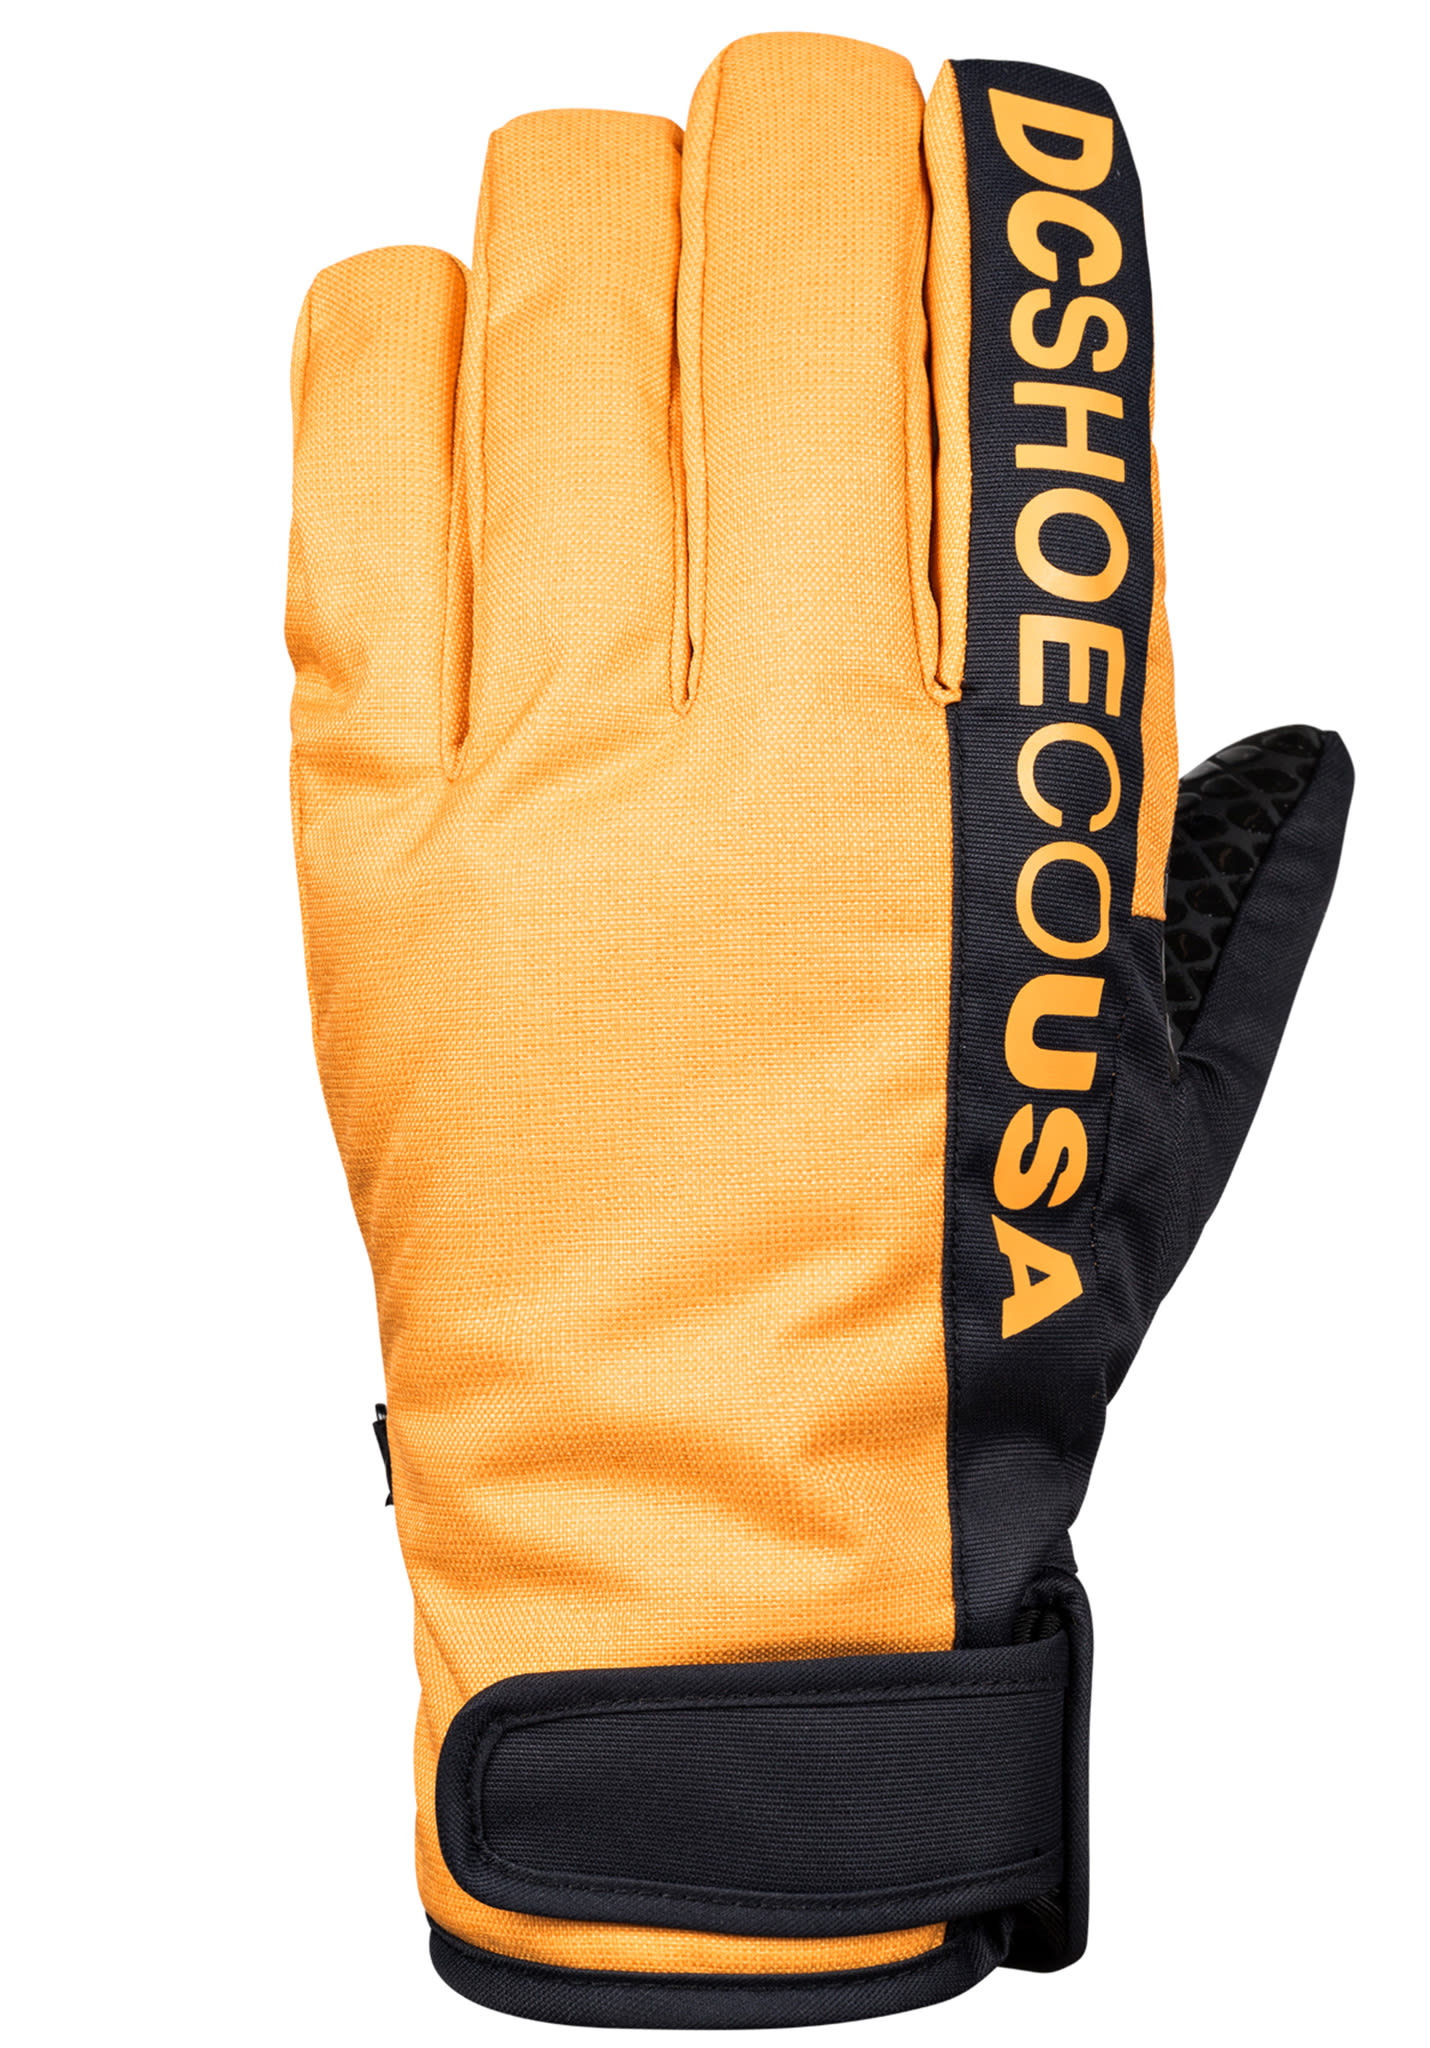 a4b521e7dbe0 DC Deadeye - Snowboard Gloves for Men - Yellow - Planet Sports